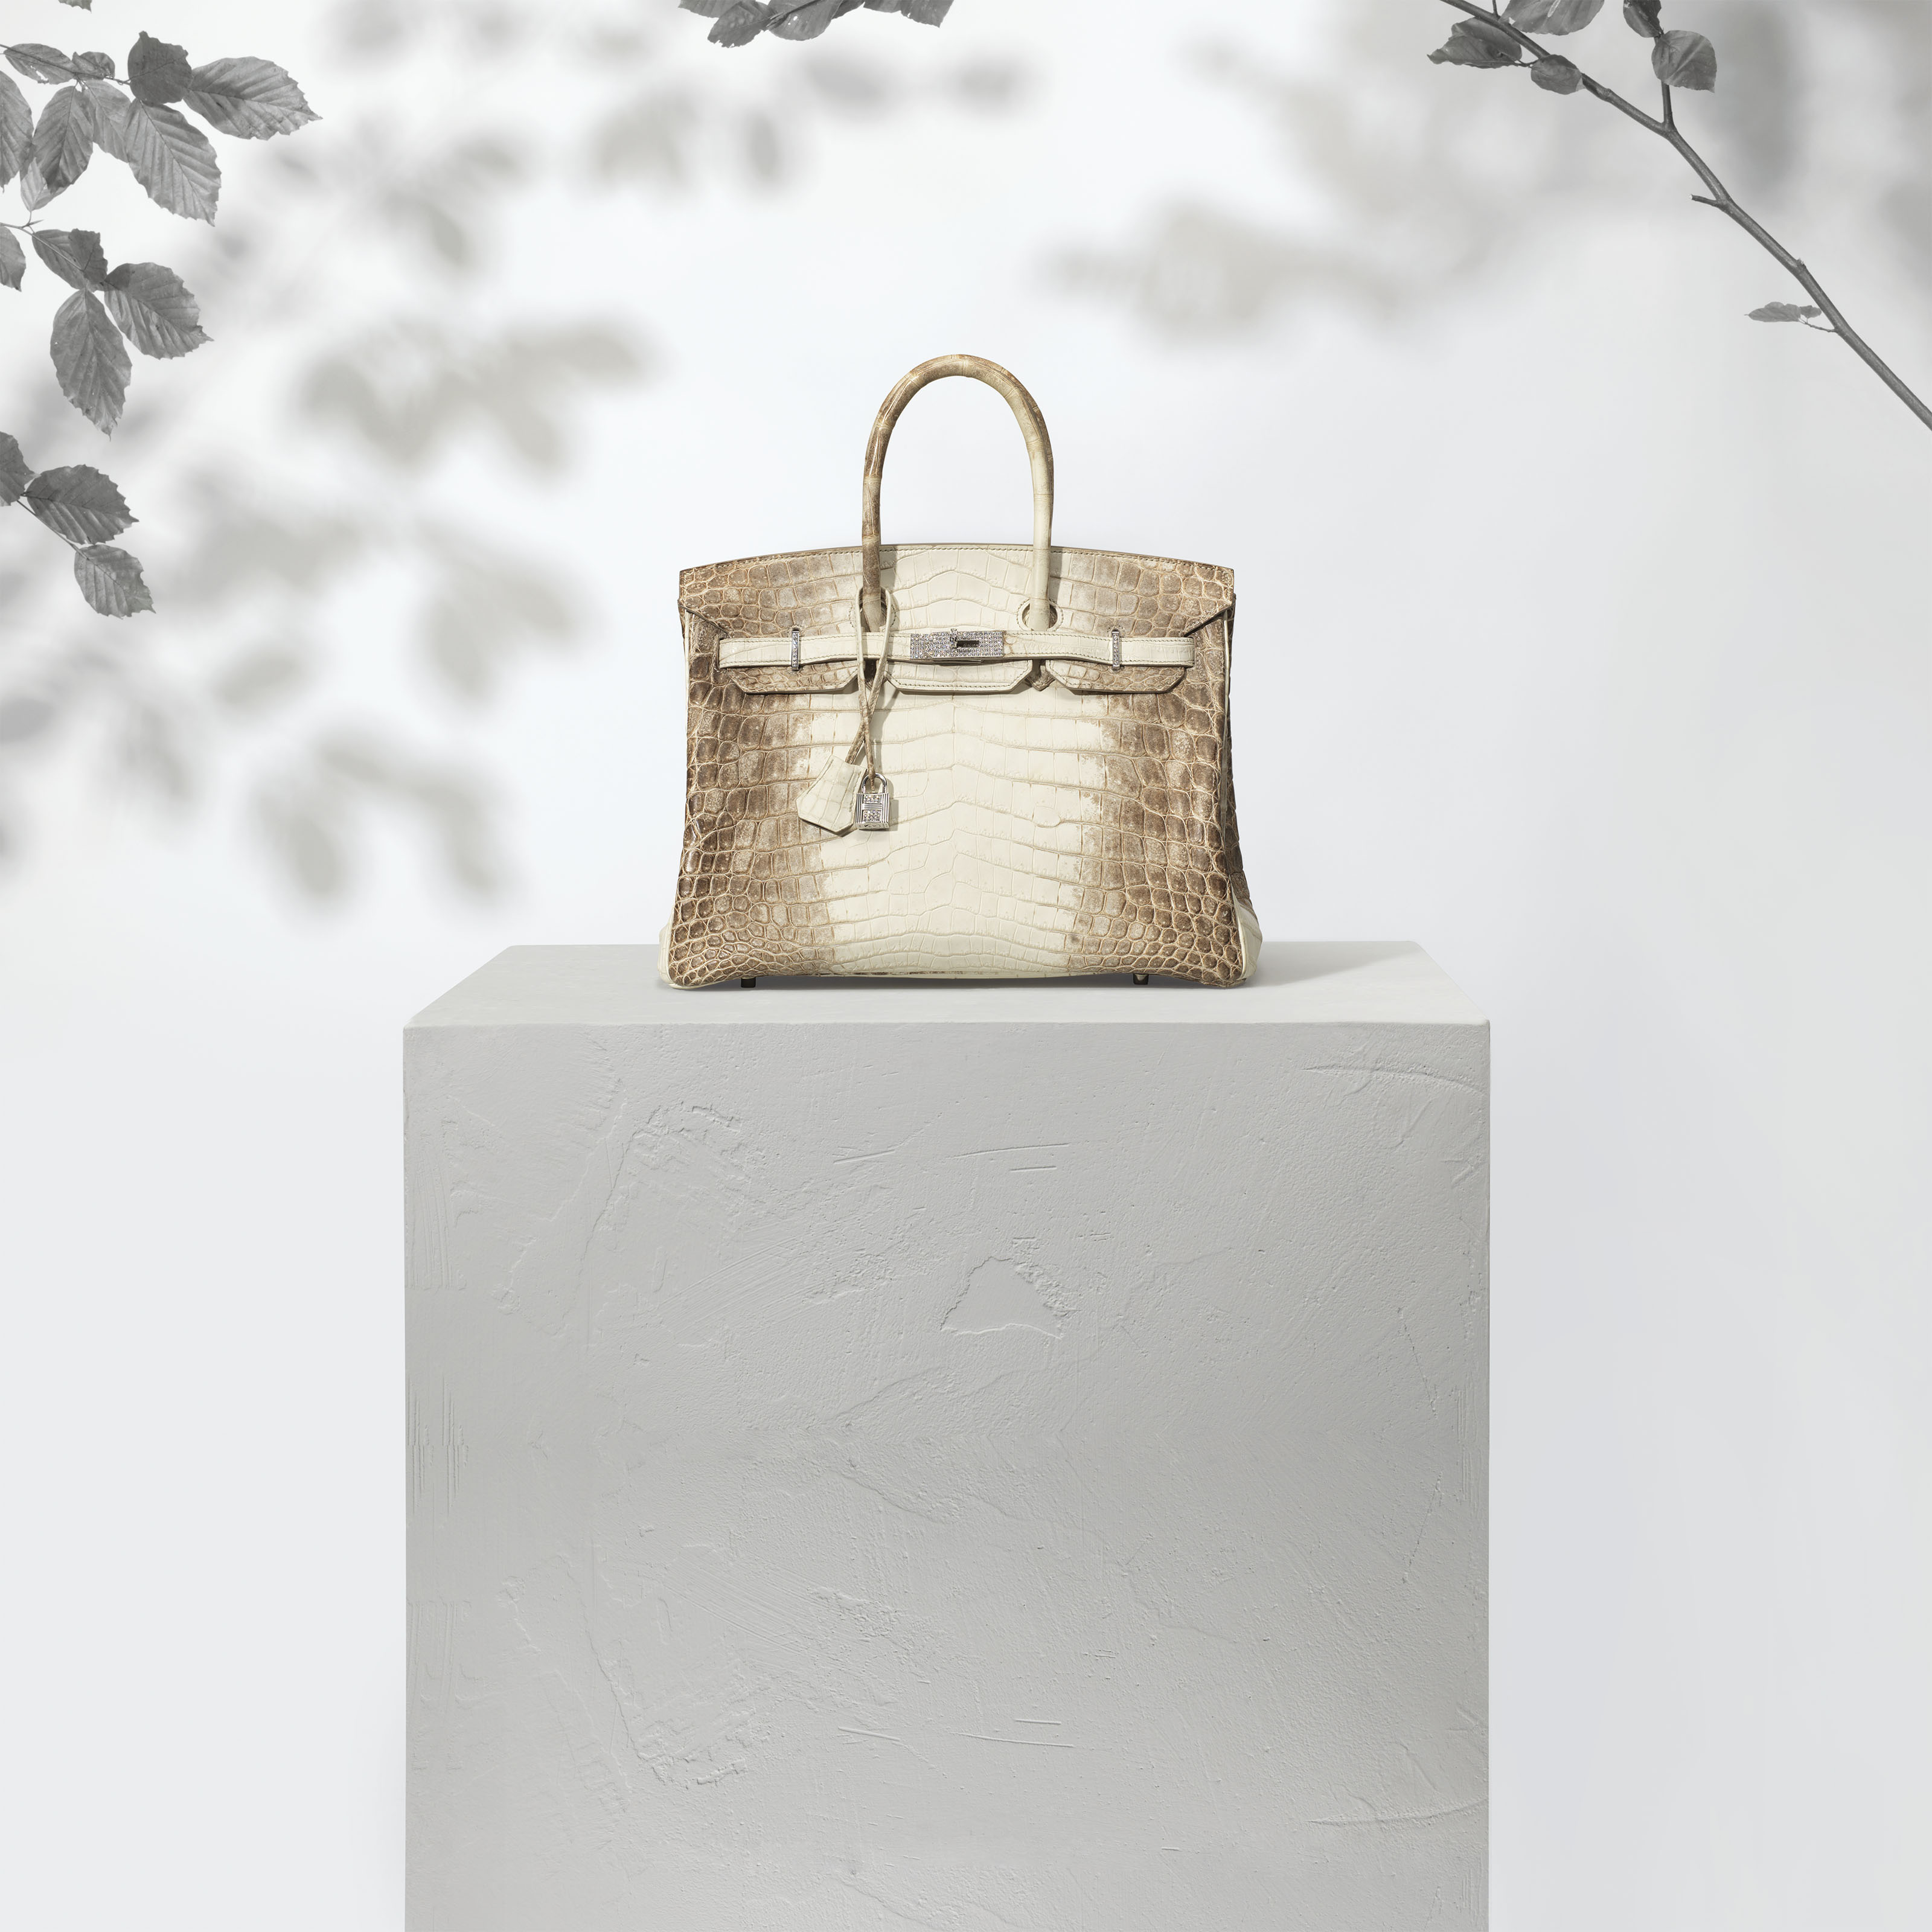 A RARE & EXCEPTIONAL, MATTE HIMALAYA NILOTICUS CROCODILE DIAMOND BIRKIN 35 WITH 18K WHITE GOLD & DIAMOND HARDWARE